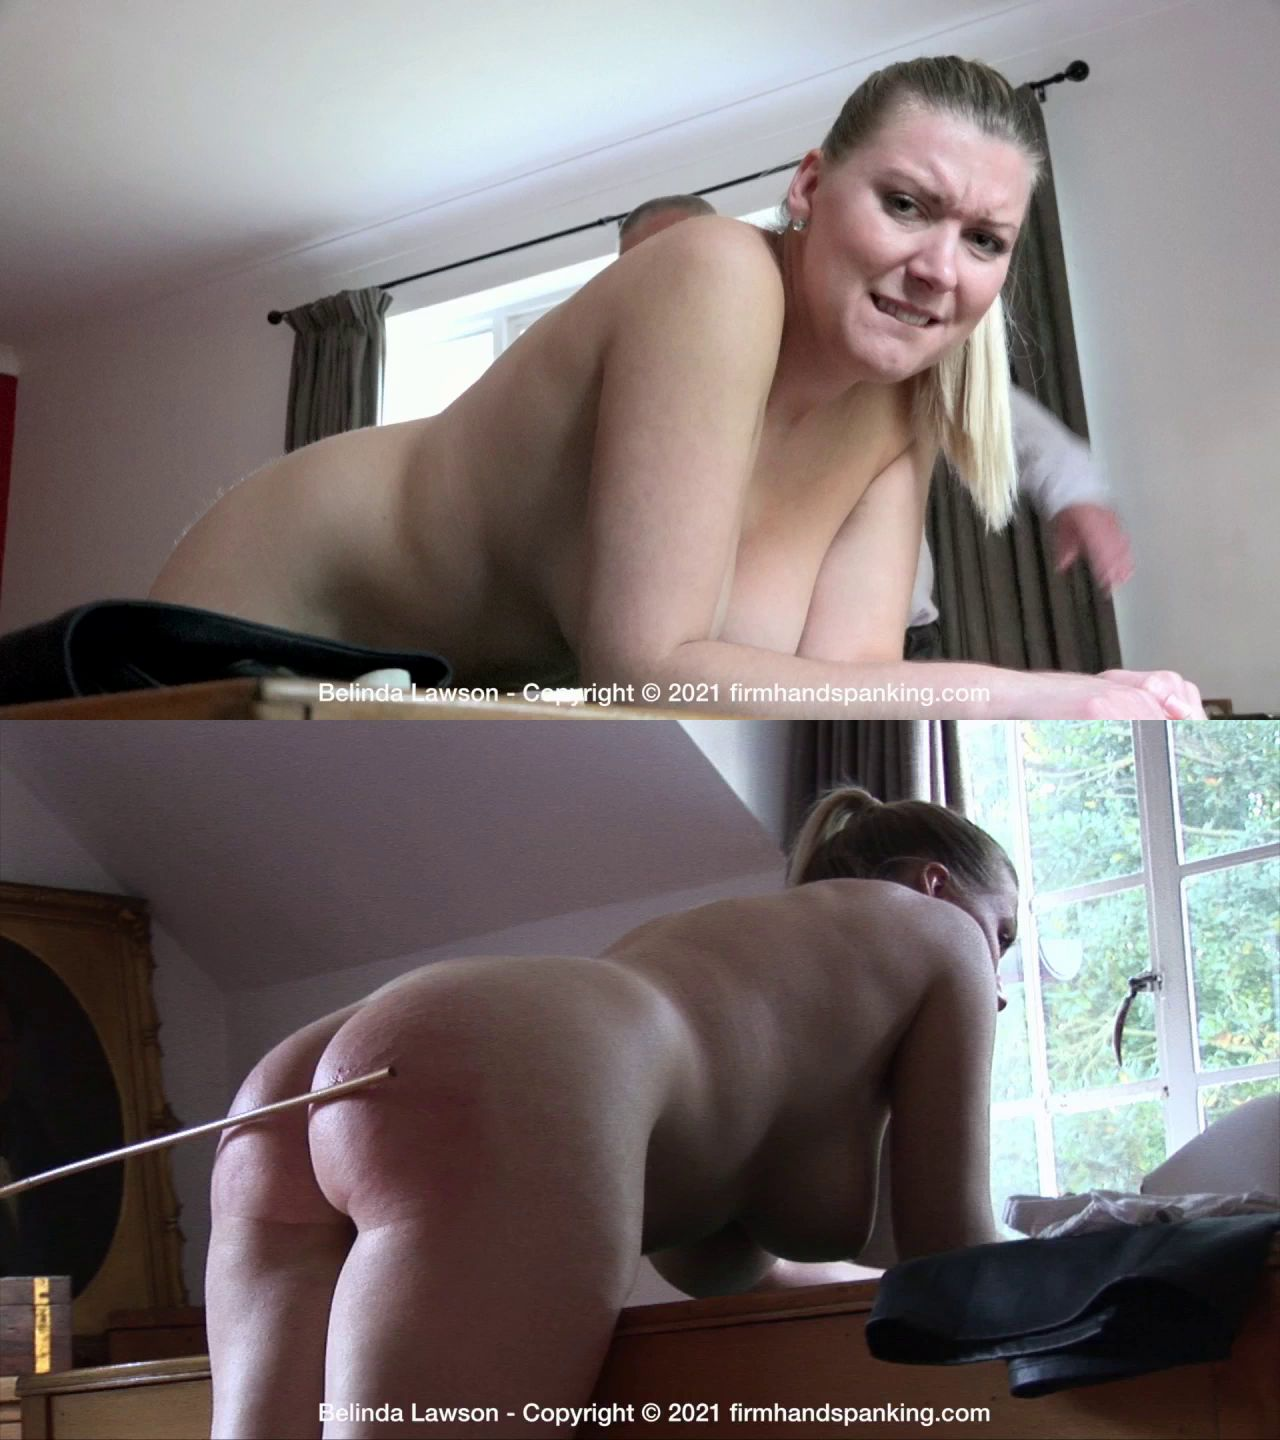 Firm Hand Spanking – MP4/HD – Belinda Lawson – Leather Princess/Finale caning for Belinda Lawson – impressively, beautifully, totally nude!